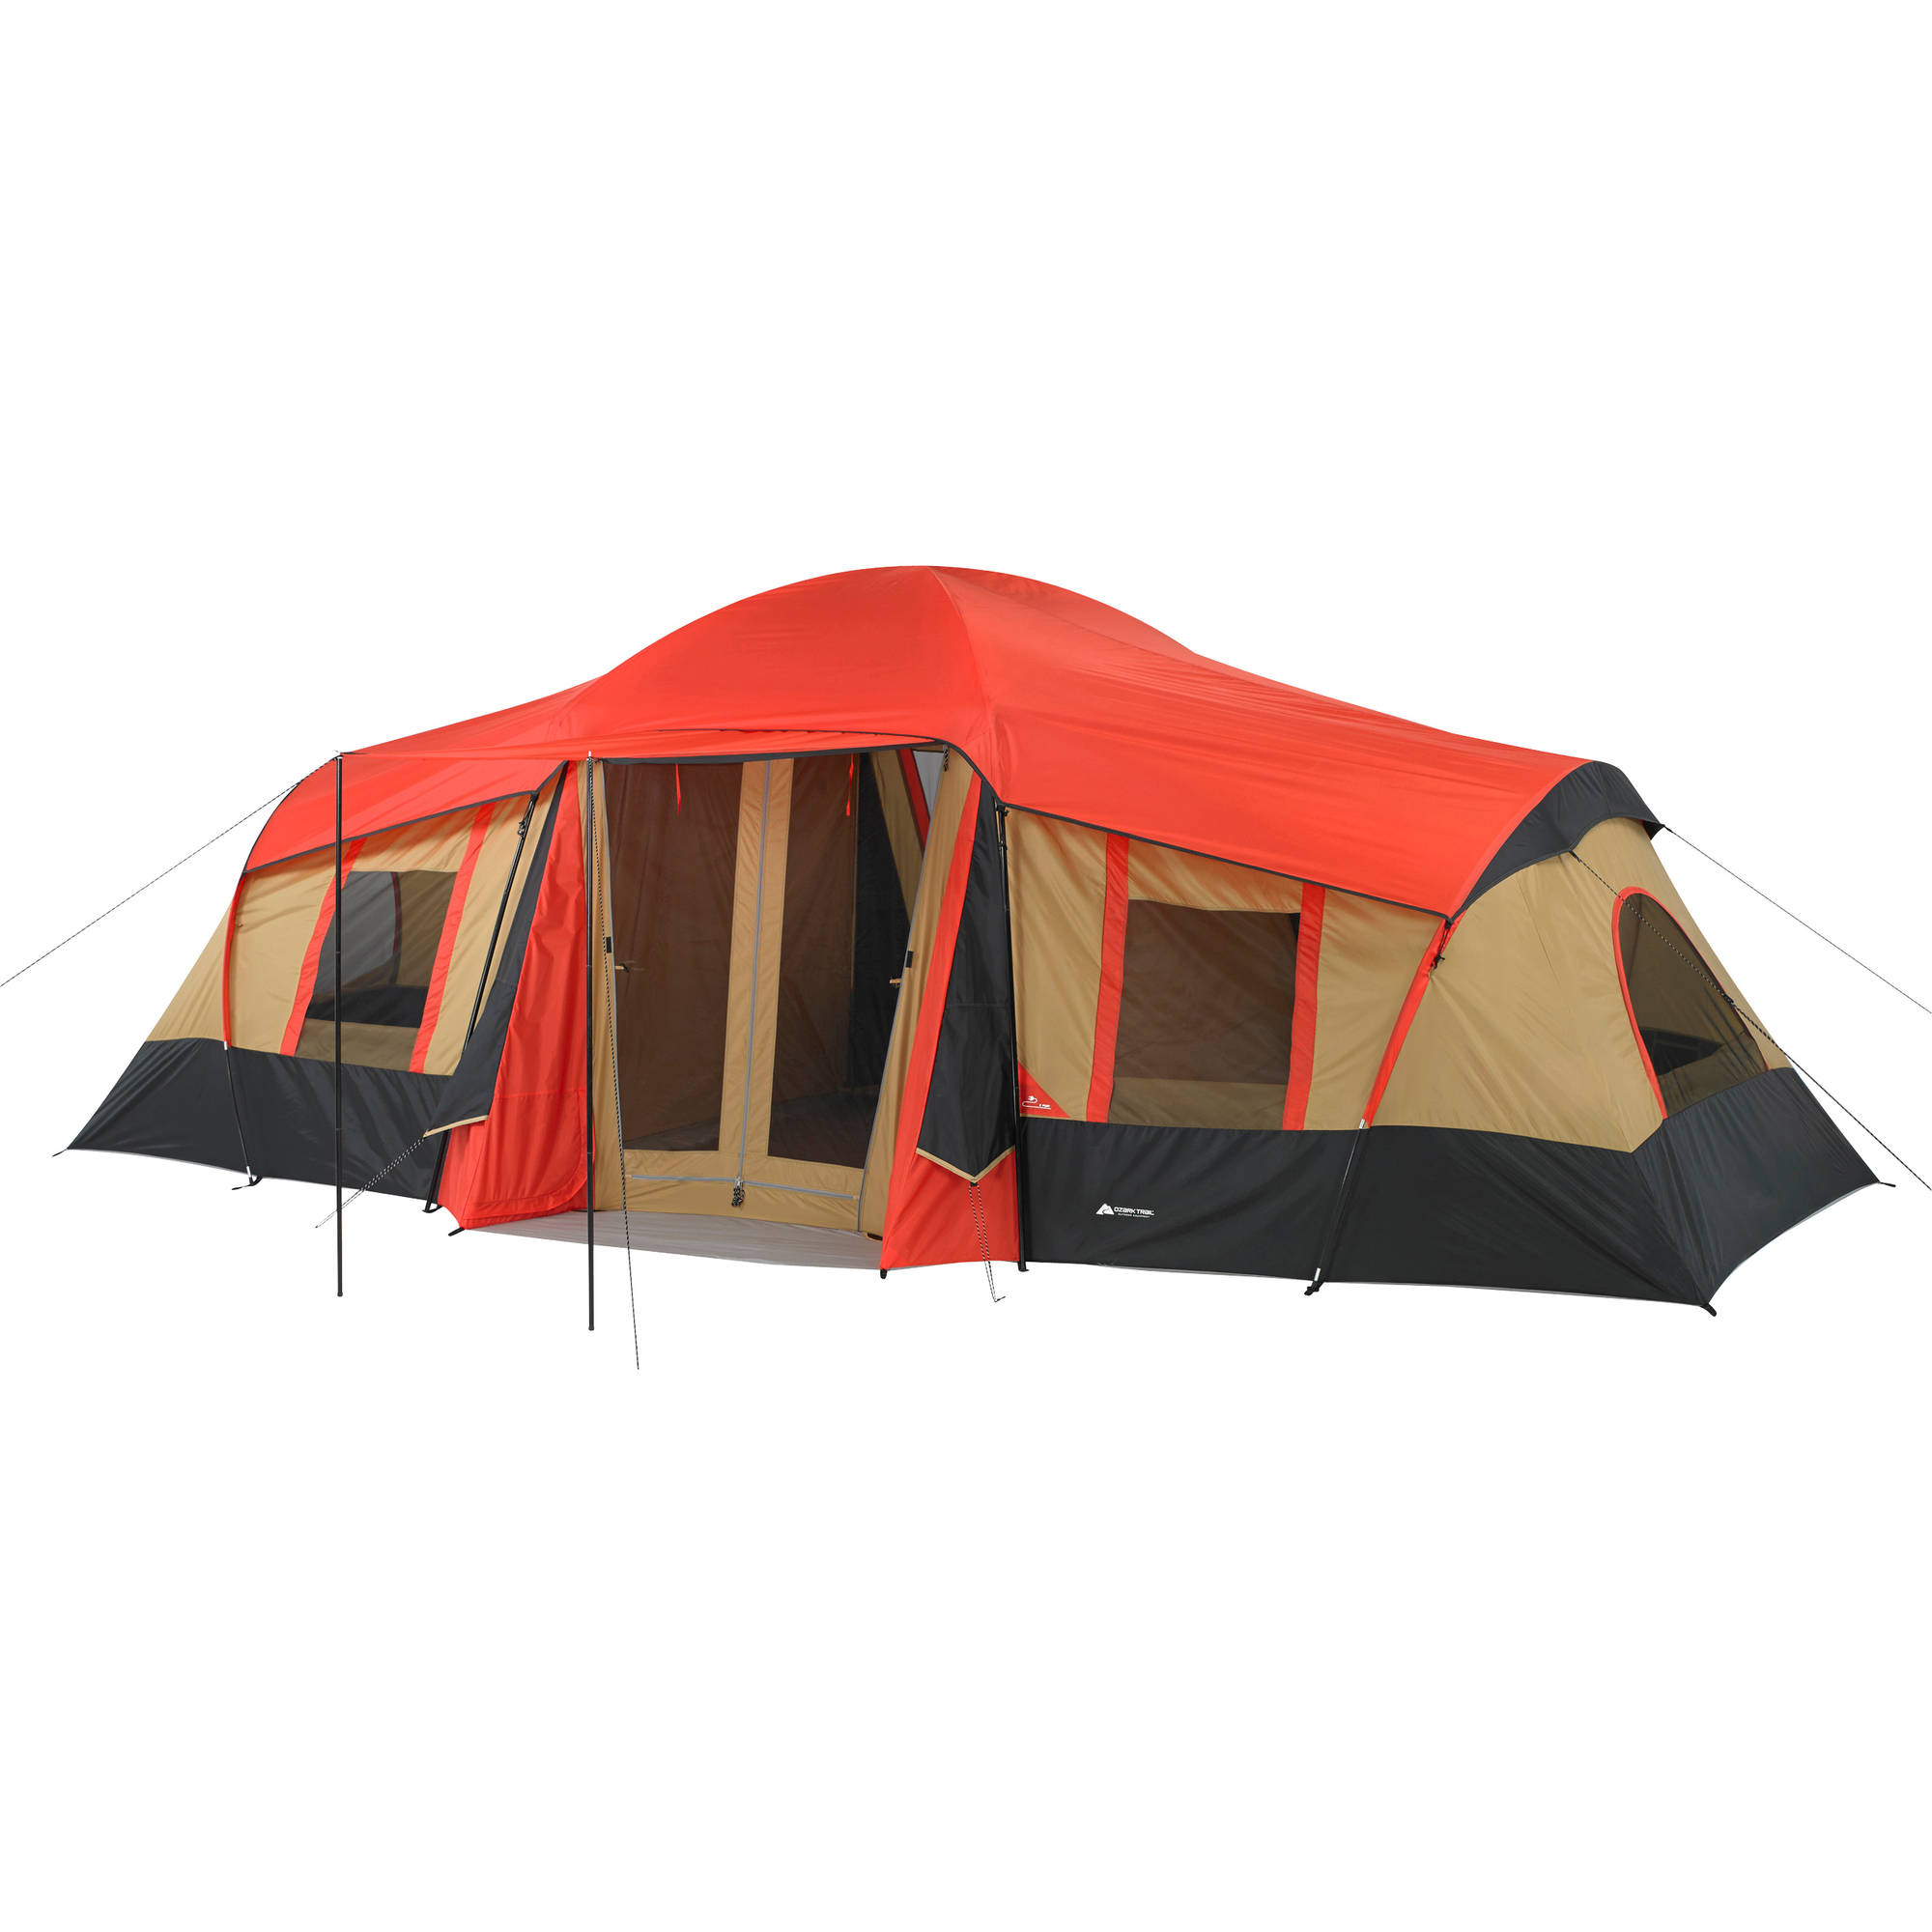 Ozark Trail 10-Person 3-Room Vacation Tent with Built-in Mud Mat - Walmart.com  sc 1 st  Walmart.com & Ozark Trail 10-Person 3-Room Vacation Tent with Built-in Mud Mat ...